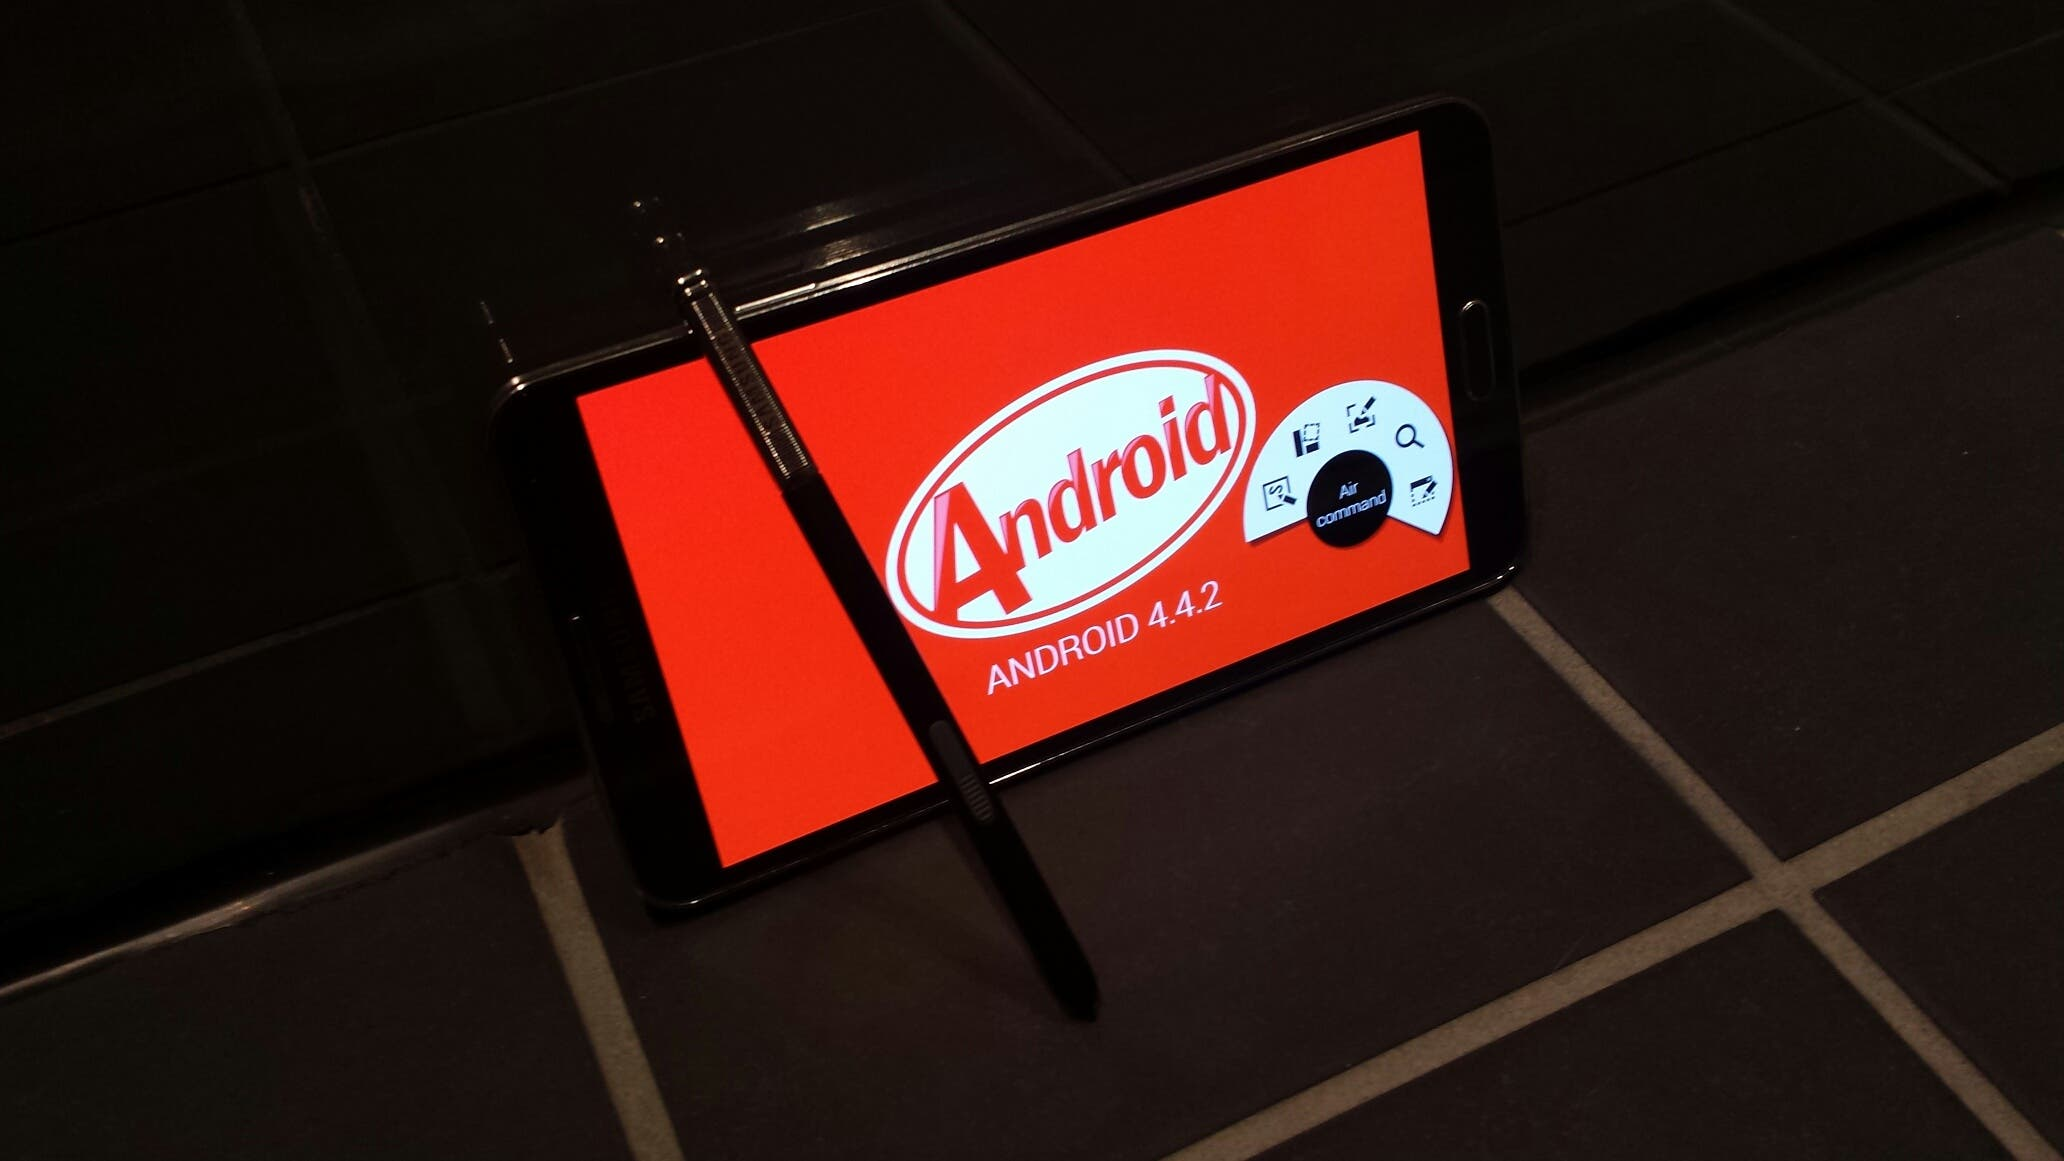 Samsung Galaxy Note 3 Android KitKat 4_4_2